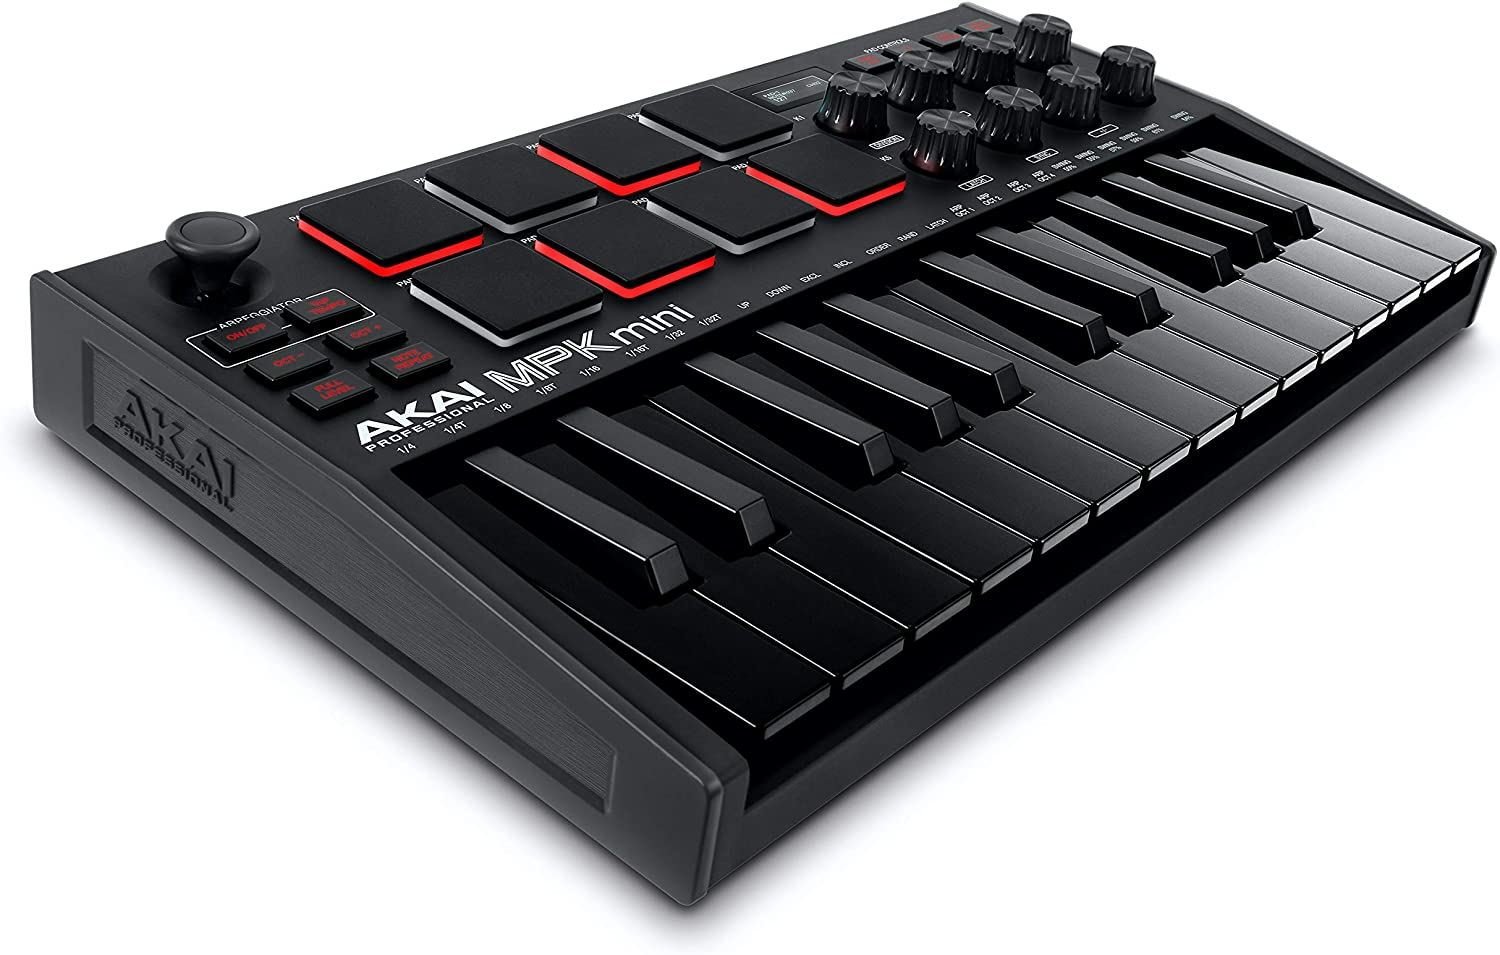 AKAI Professional MPK Mini MK3 | 25 Key USB MIDI Keyboard Controller With 8 Backlit Drum Pads, 8 Knobs and Music Production Software included (Black)